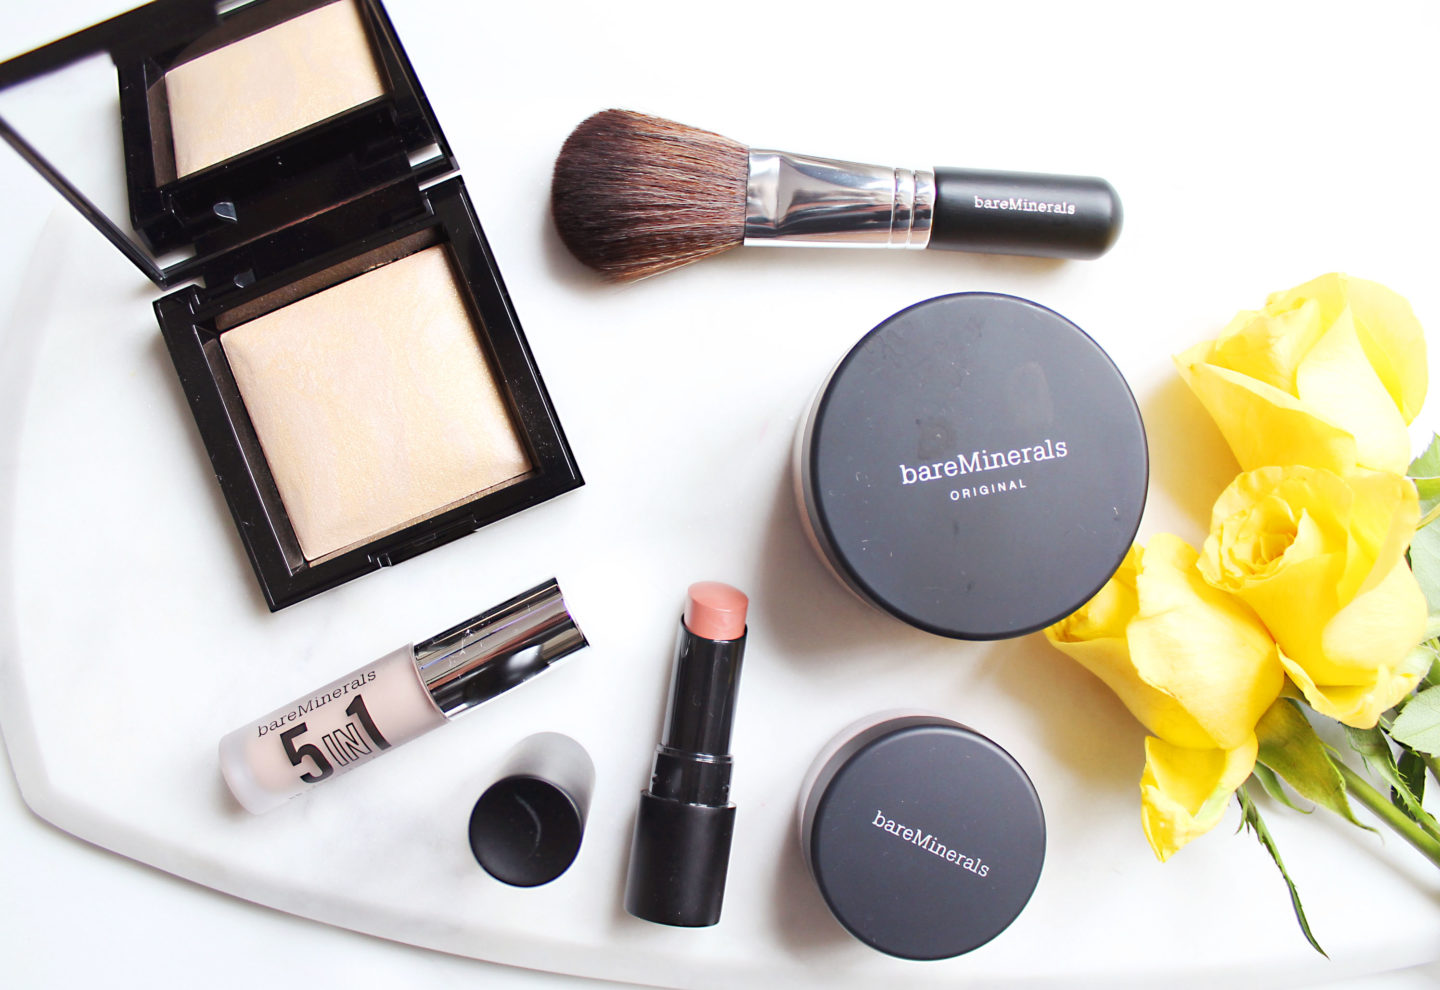 bareMinerals Get Glowing collection